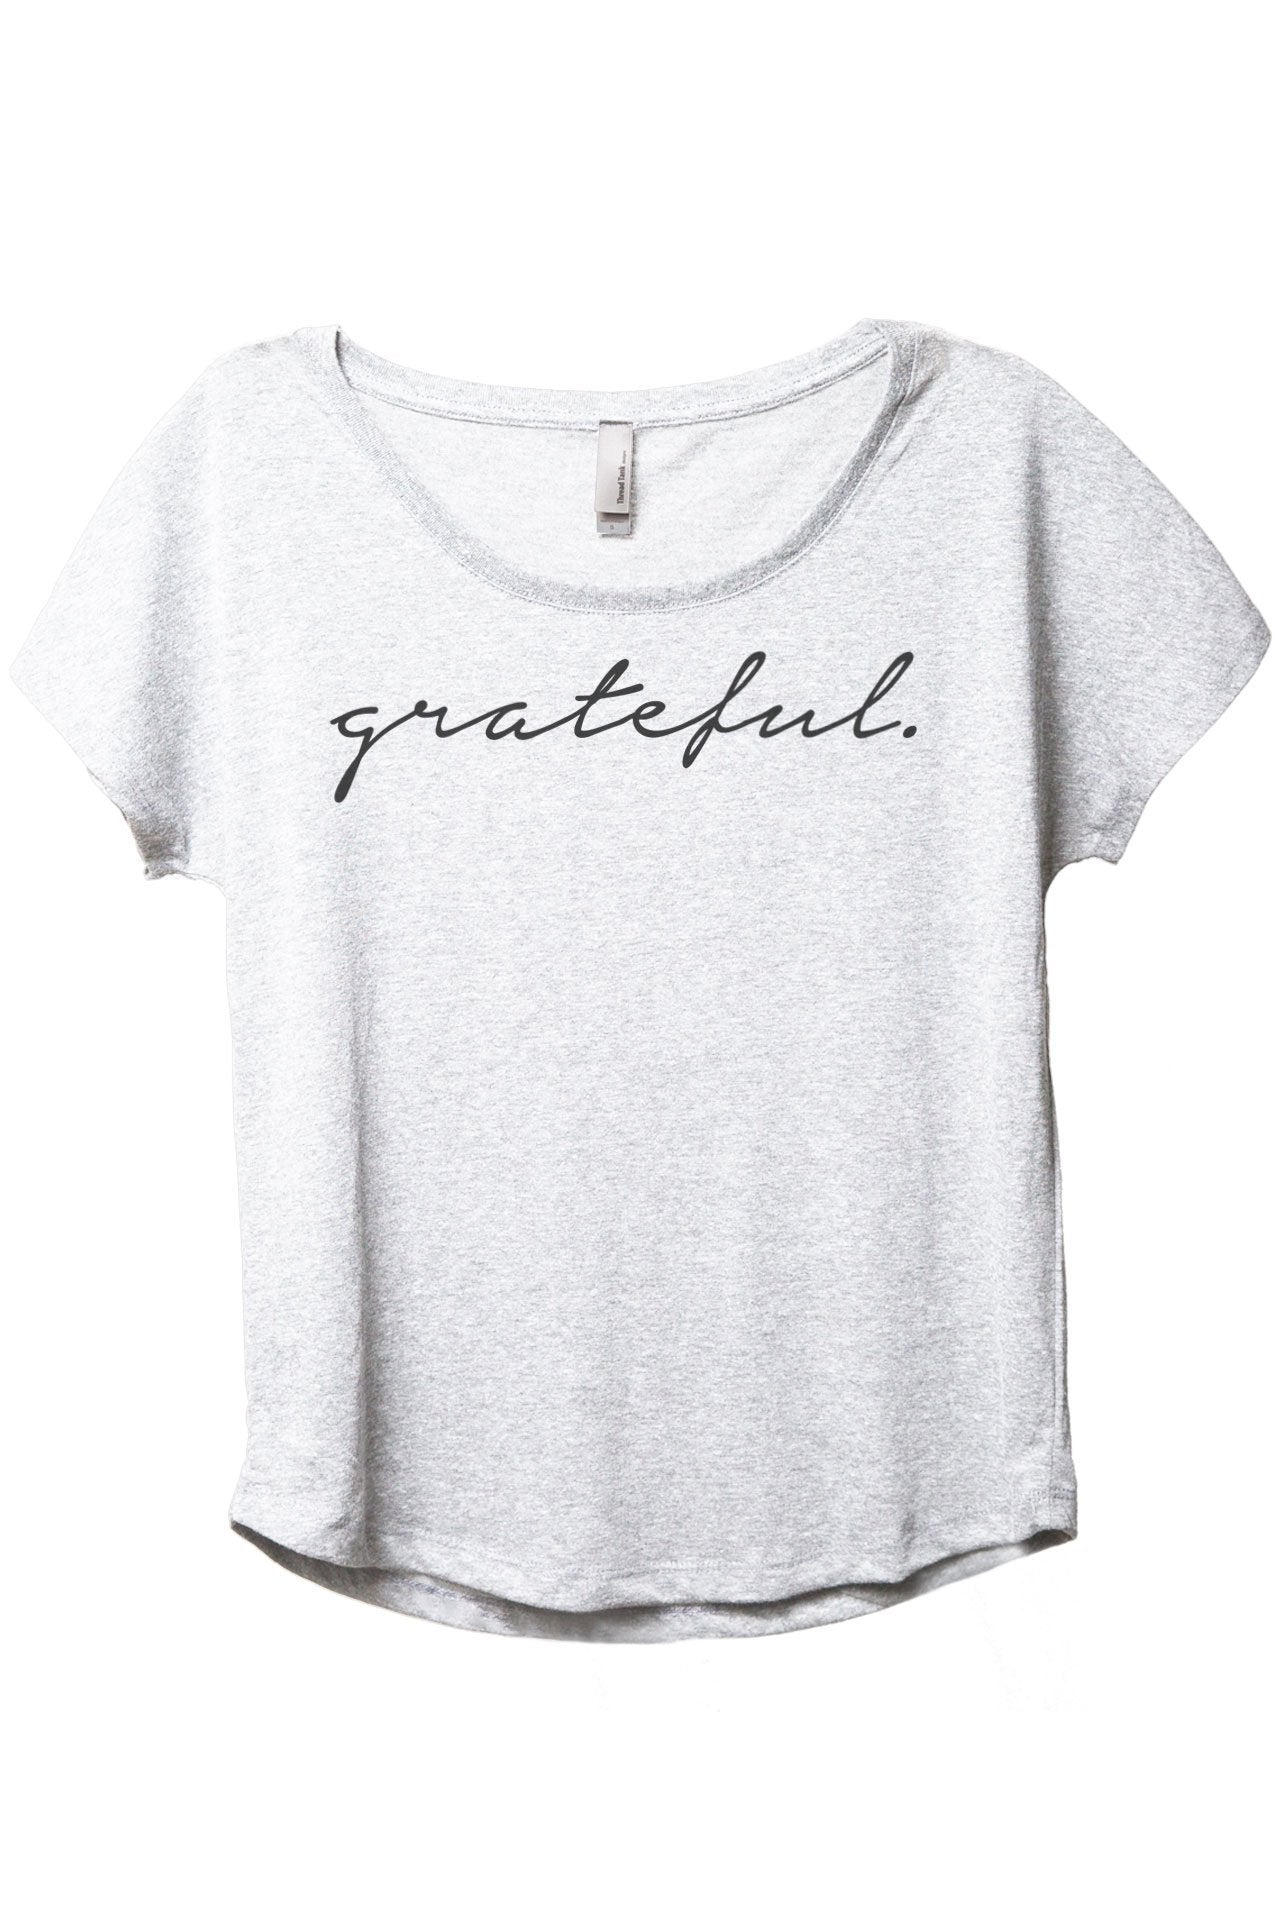 Grateful Women's Relaxed Slouchy Dolman T-Shirt Tee Heather White